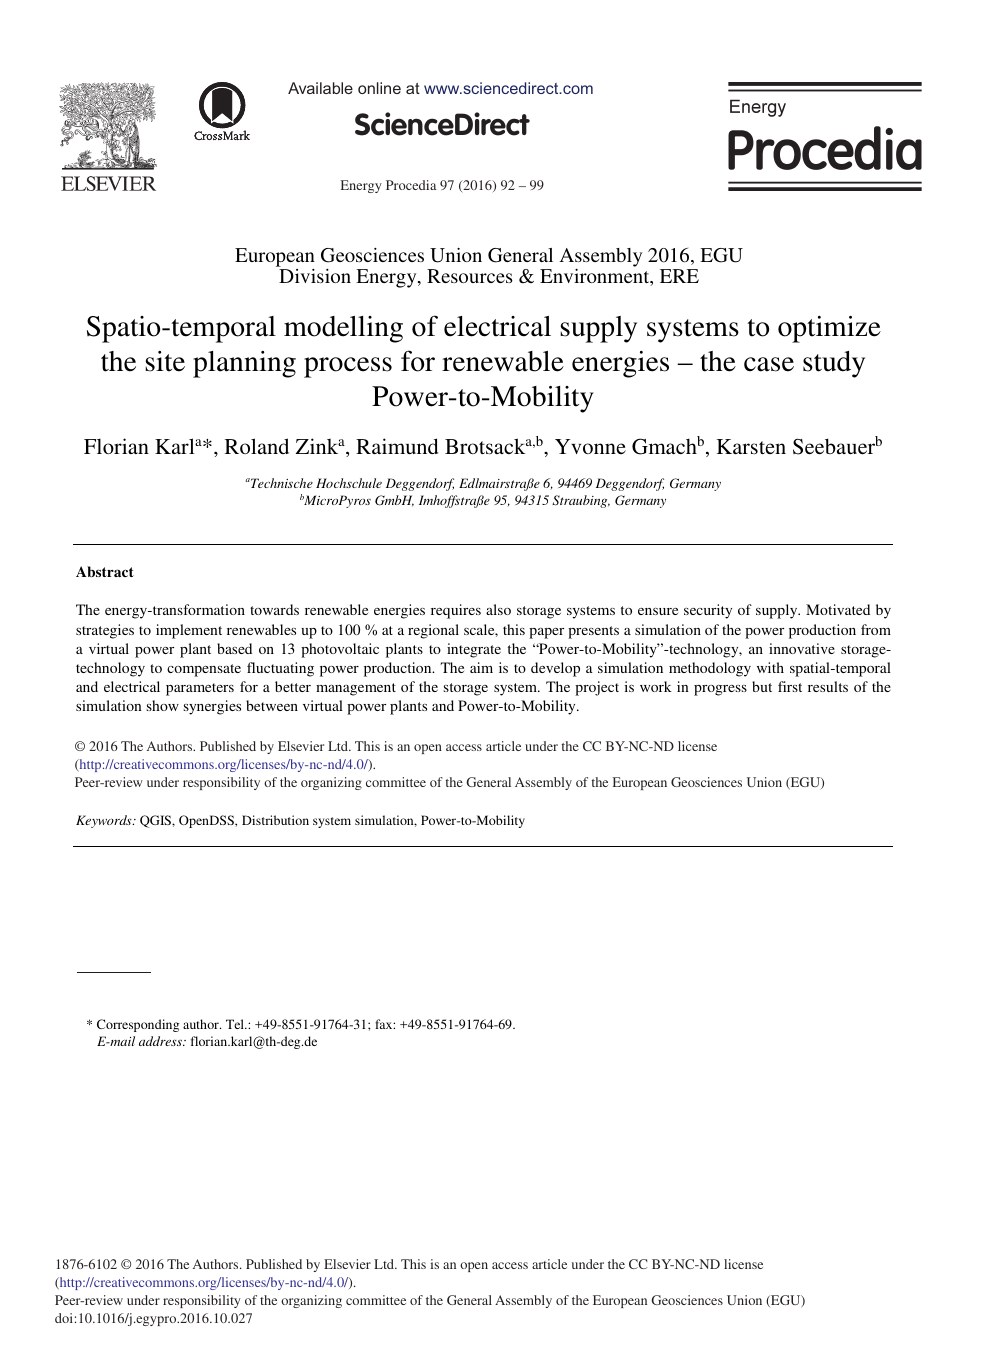 Spatio-temporal Modelling of Electrical Supply Systems to